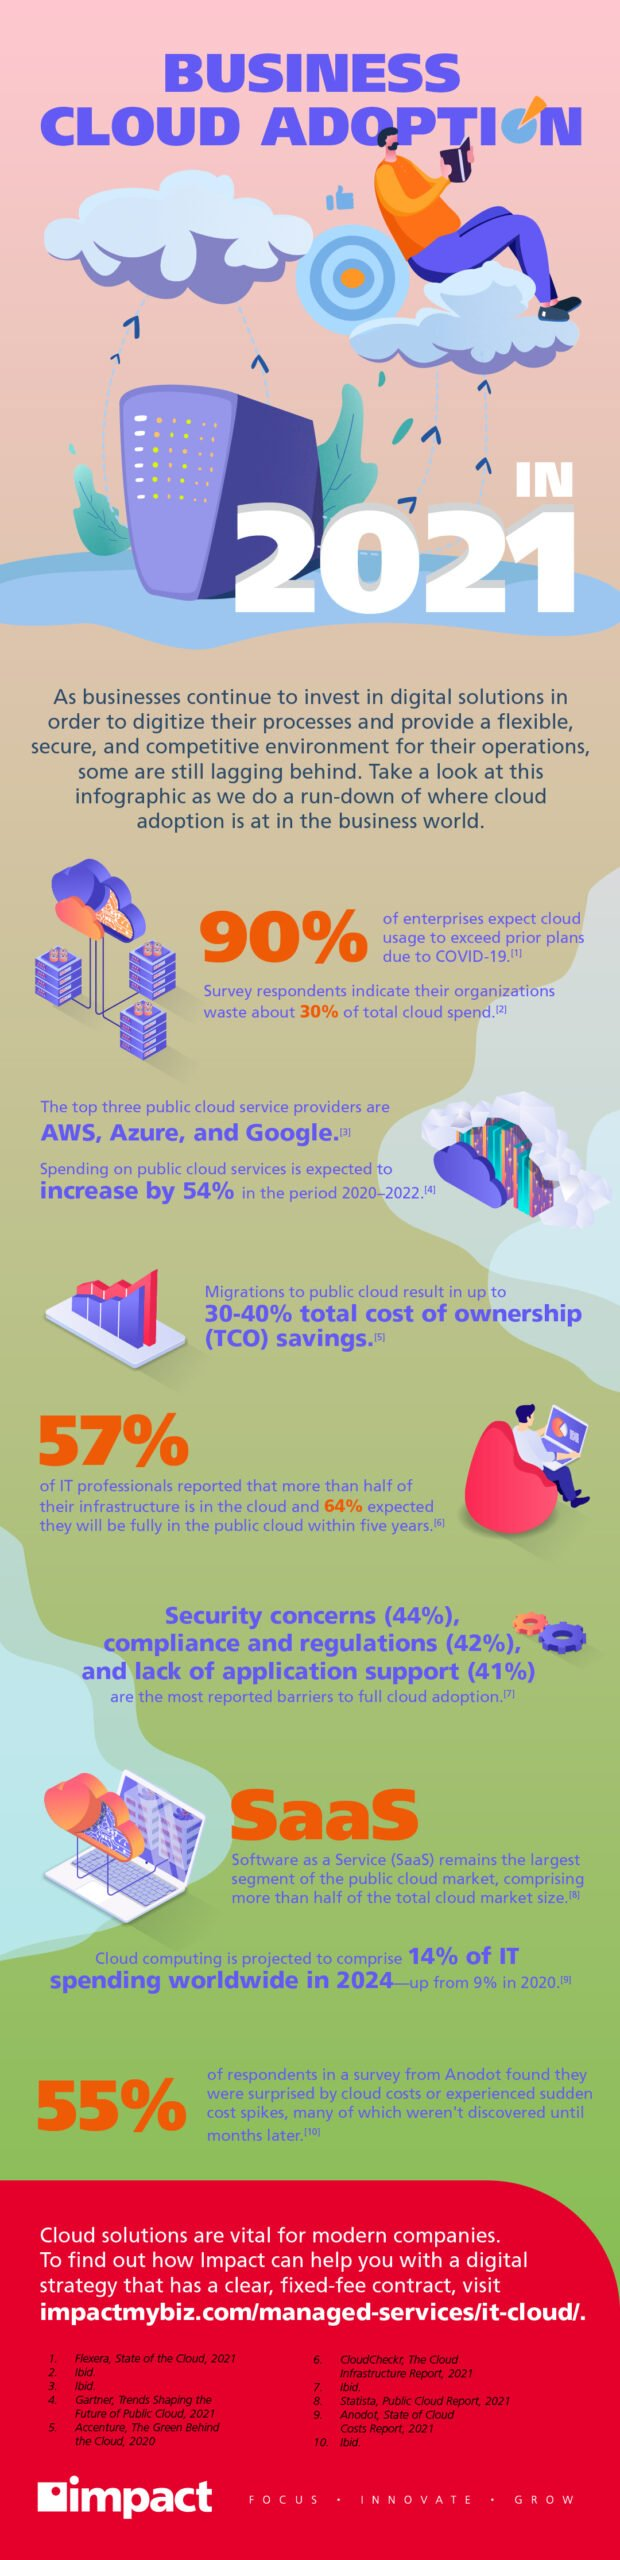 Small Business Cloud Adoption In 2021